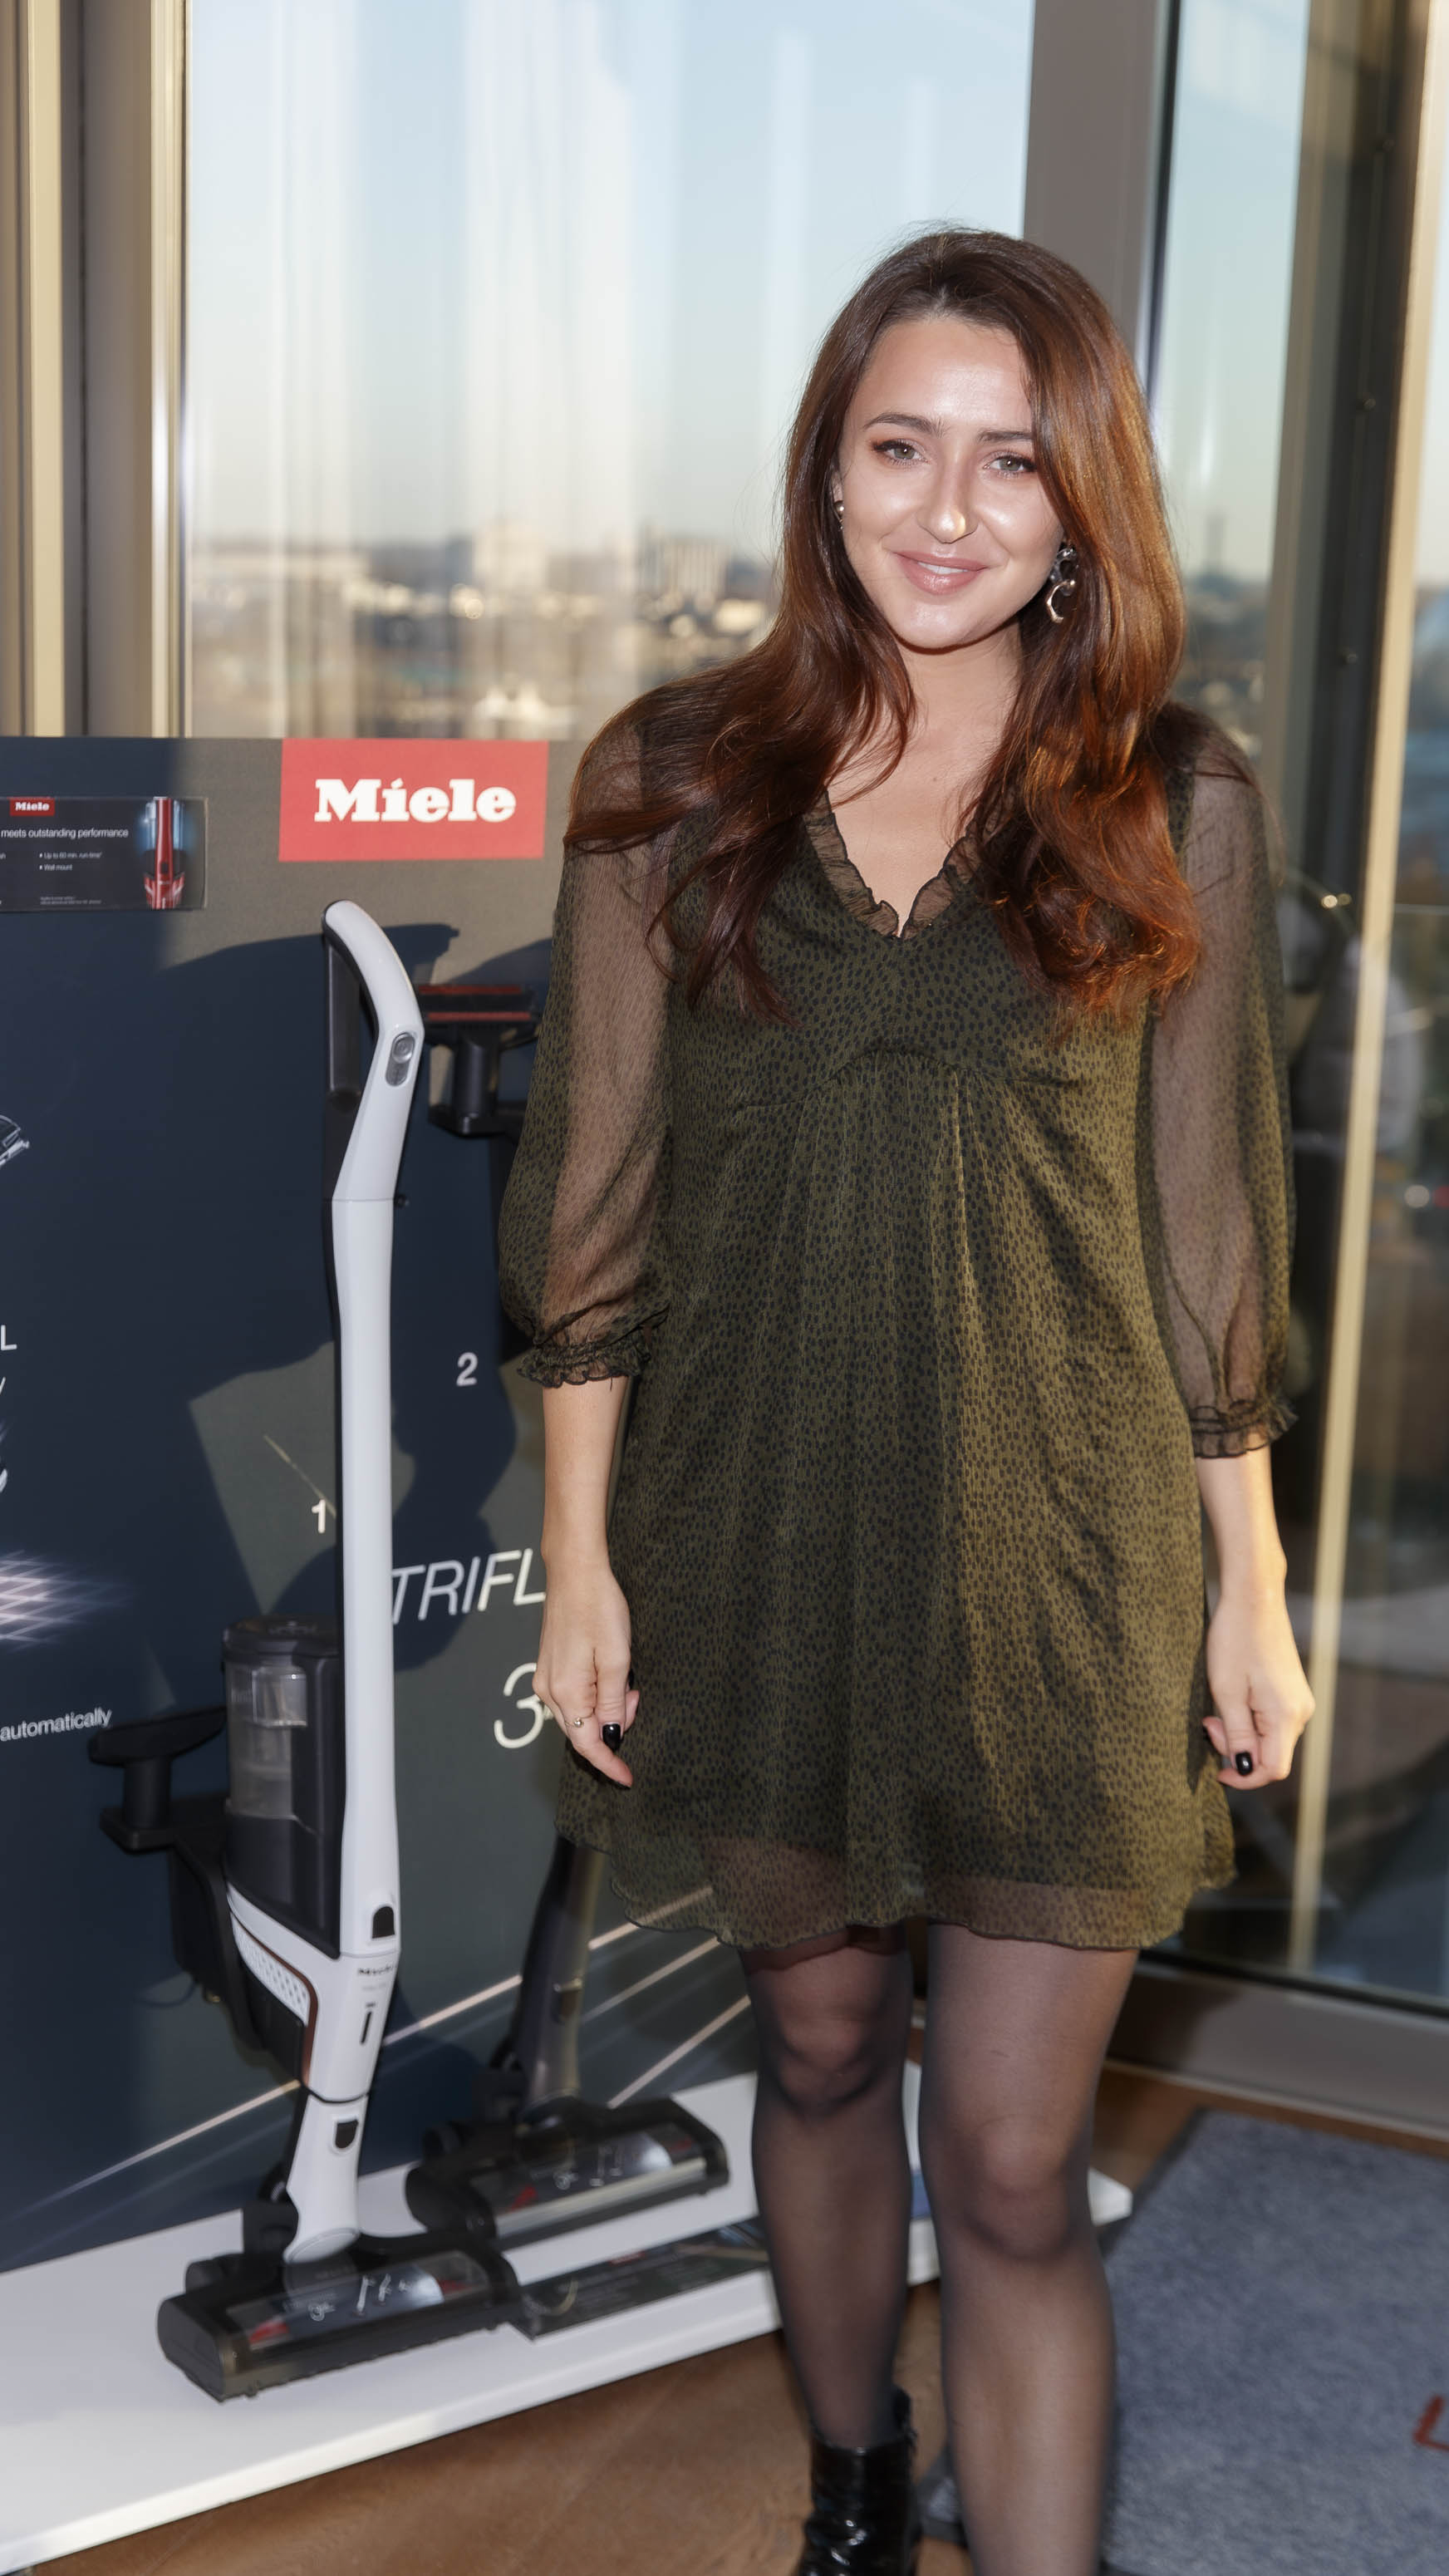 Rachel Kellegher pictured at the launch of Miele Triflex. The world's leading manufacturer of cylinder vacuum cleaners, Miele, unveiled its first ever cordless handstick model at the stunning Landsdowne Place penthouse. Hosted by Miele managing director, Pat McGrath and in conversation with Dermot Bannon and Ciara Elliott, guests experienced the ultimate cordless vacuum cleaner, which is available in all major retailers from €499. Picture Andres Poveda